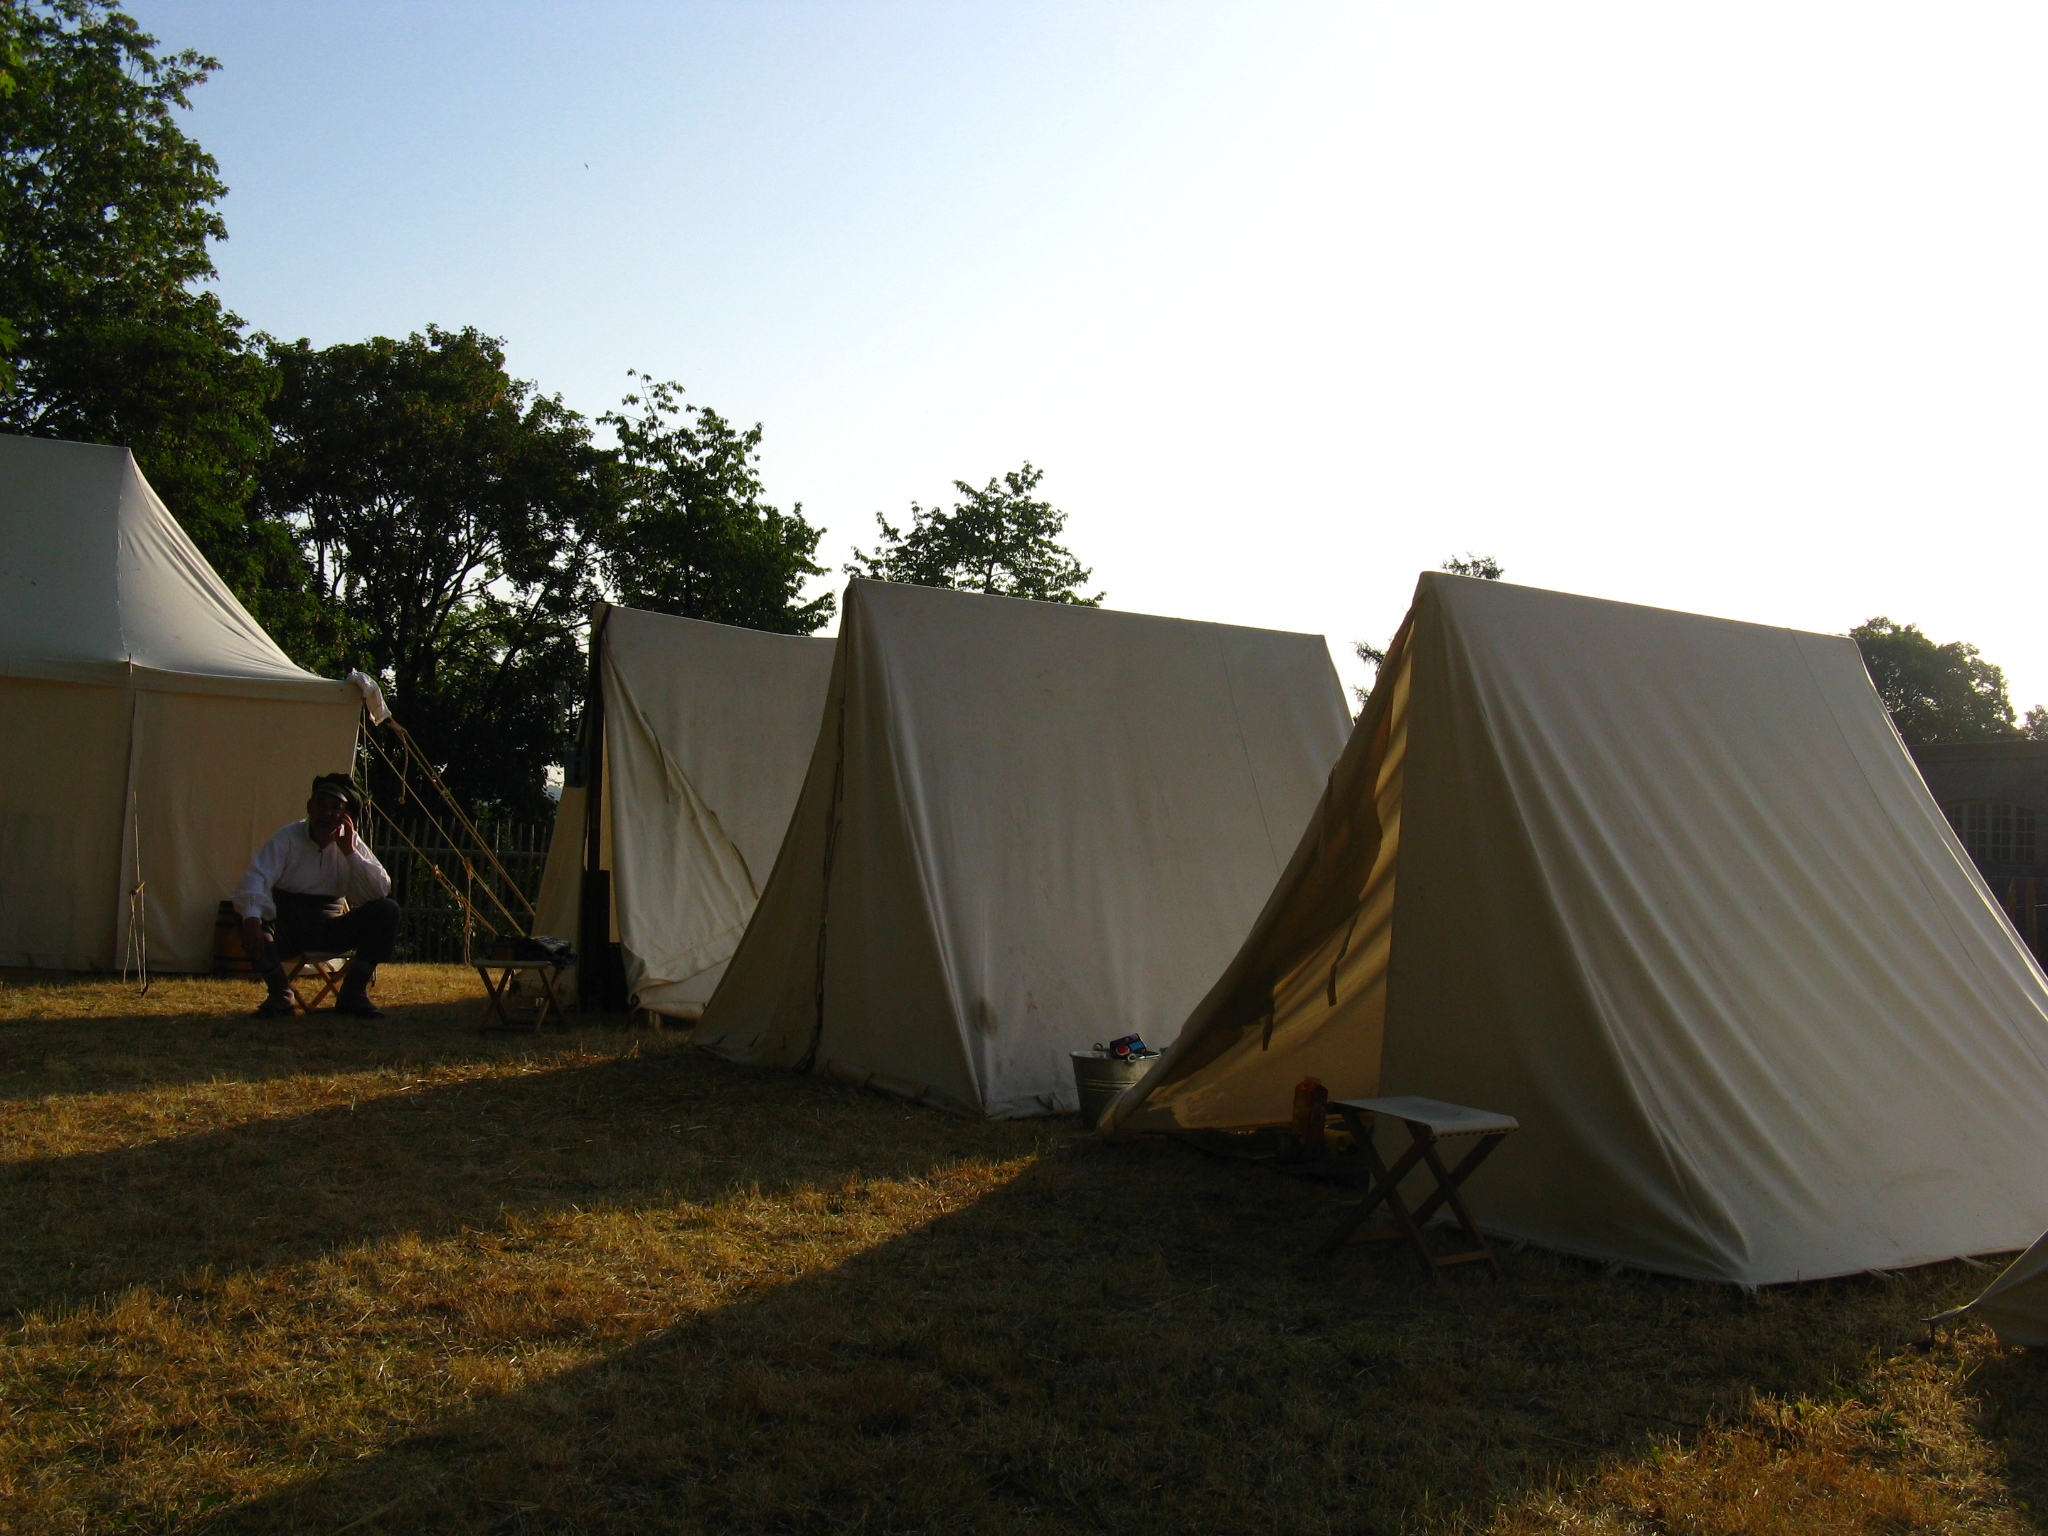 Ridge-tents can be made any size you require. Our standard 2 person ridge- tent is 300 x 200 x 185 cm with a bell. & Ridge-tent | Tents of Old